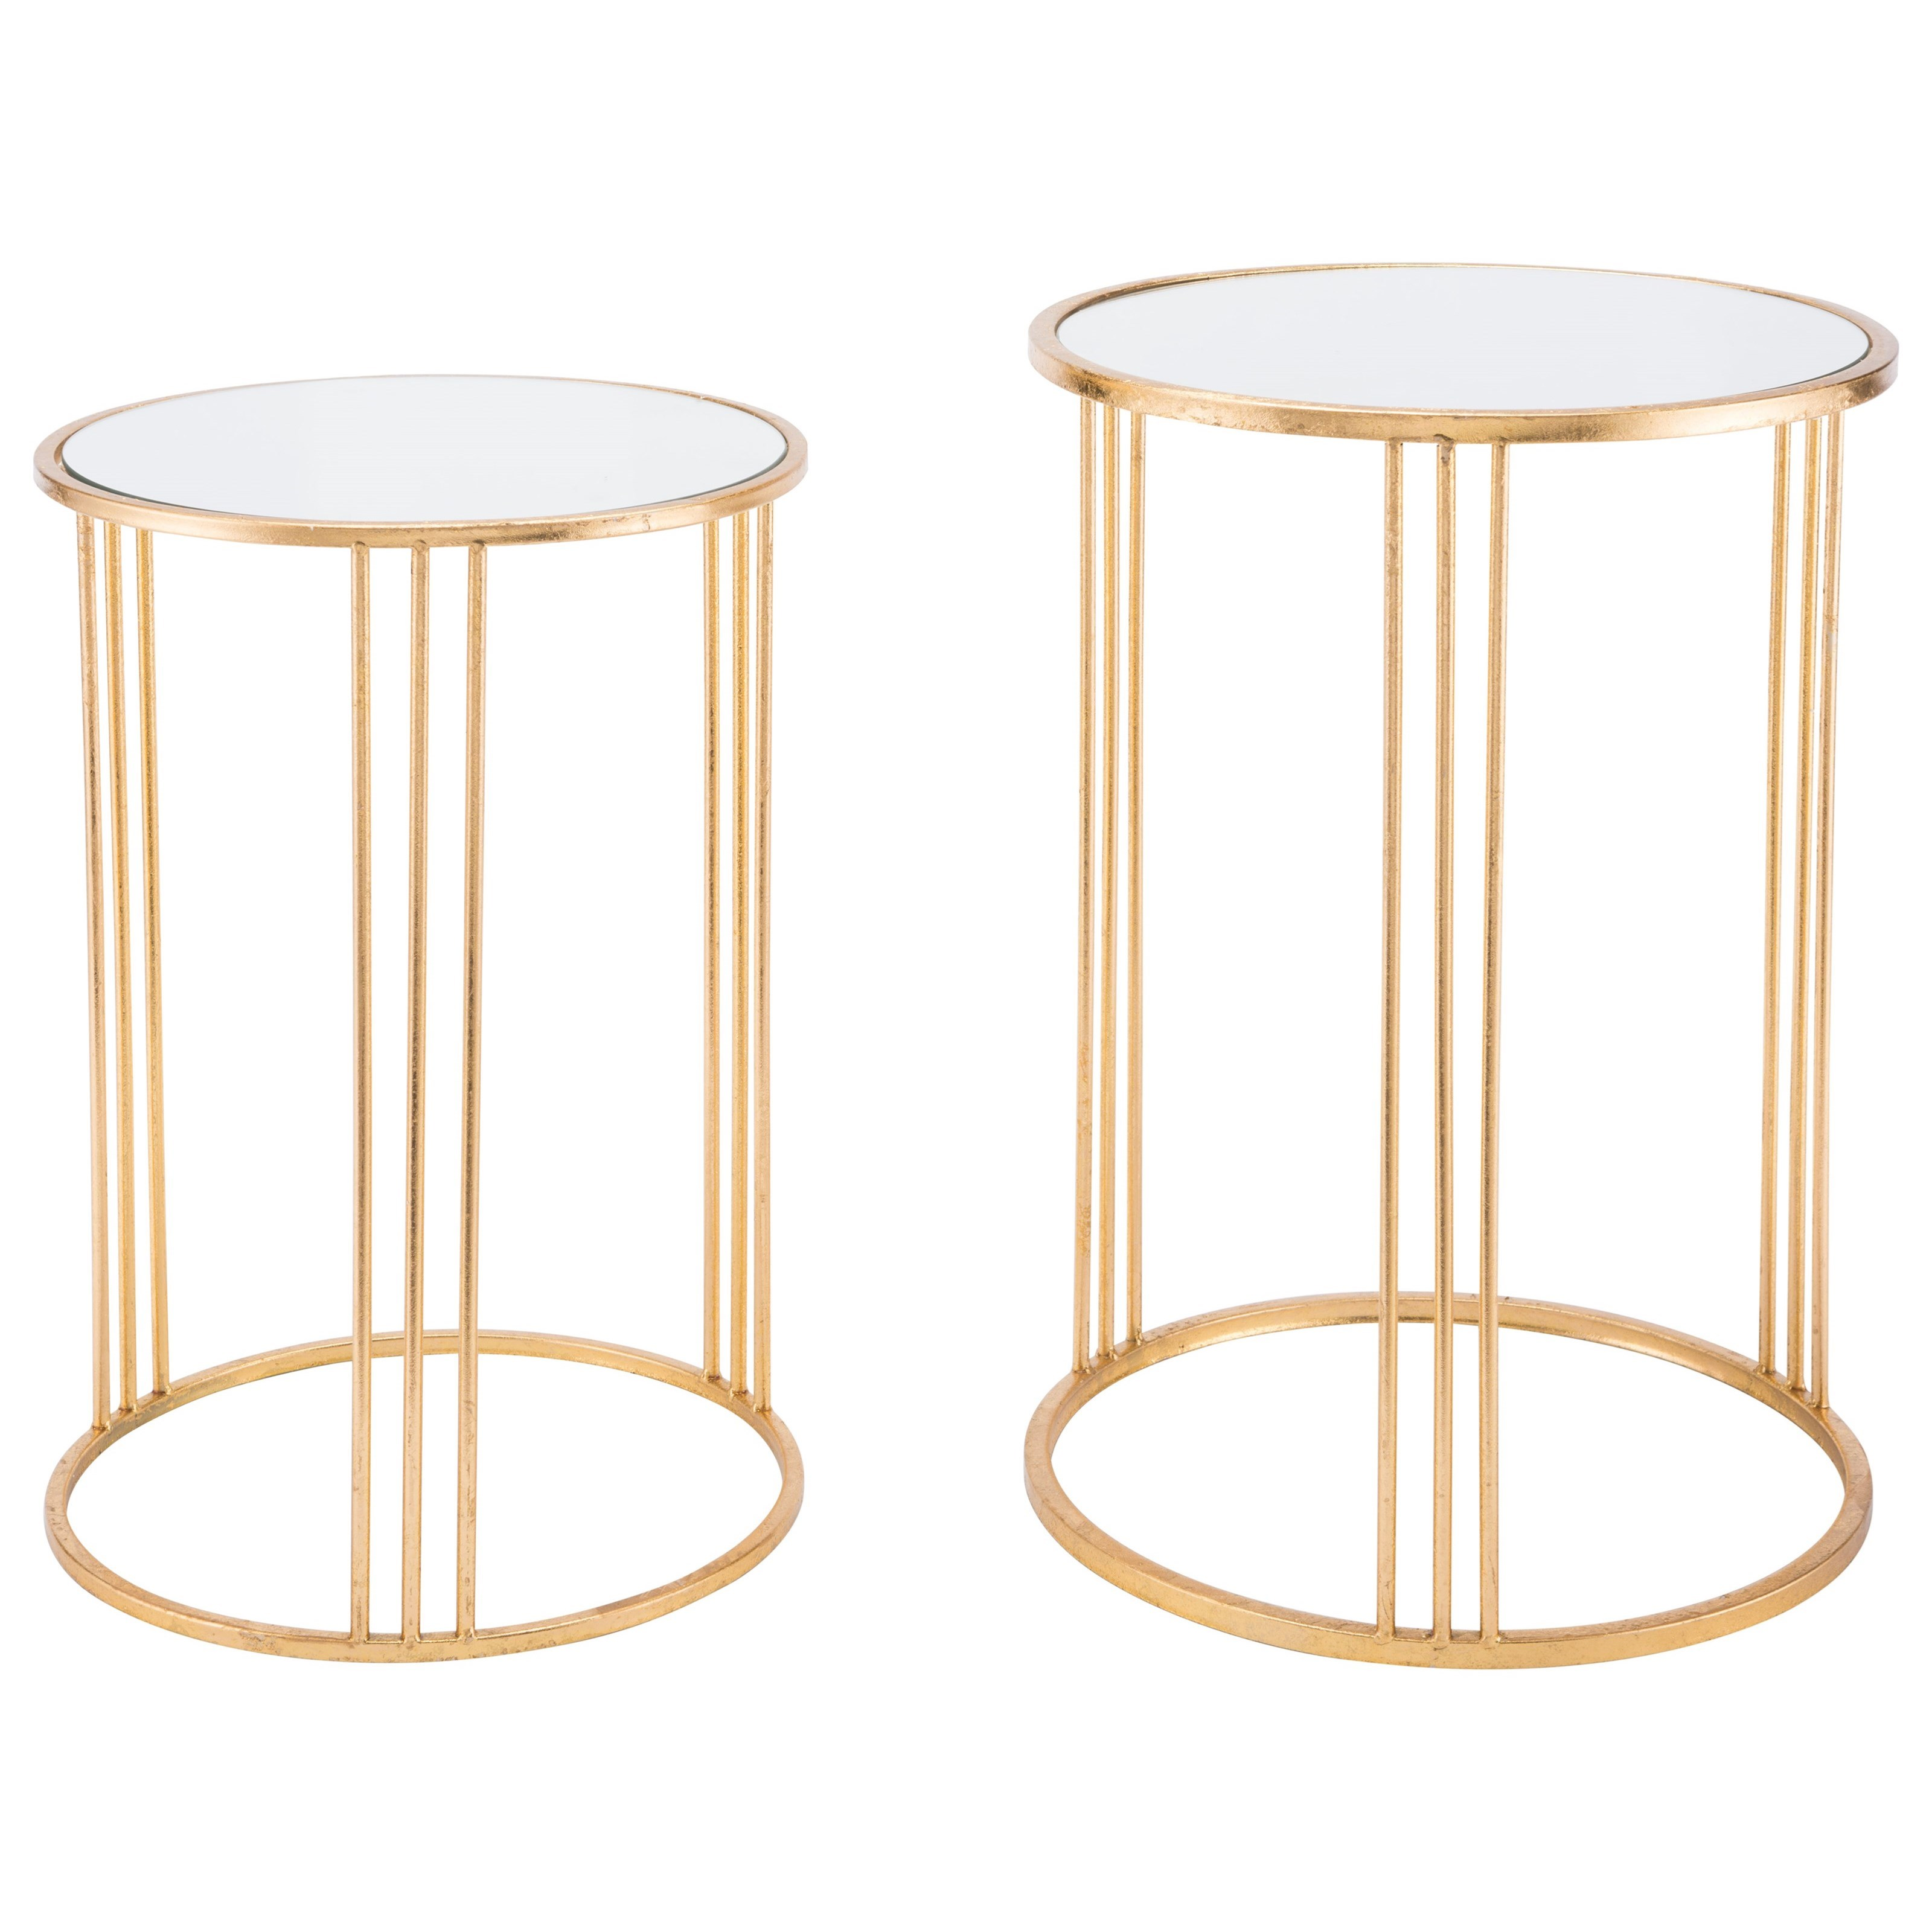 Zuo Accent Tables Magri Set 2 Nesting Round Tables - Item Number: A10763